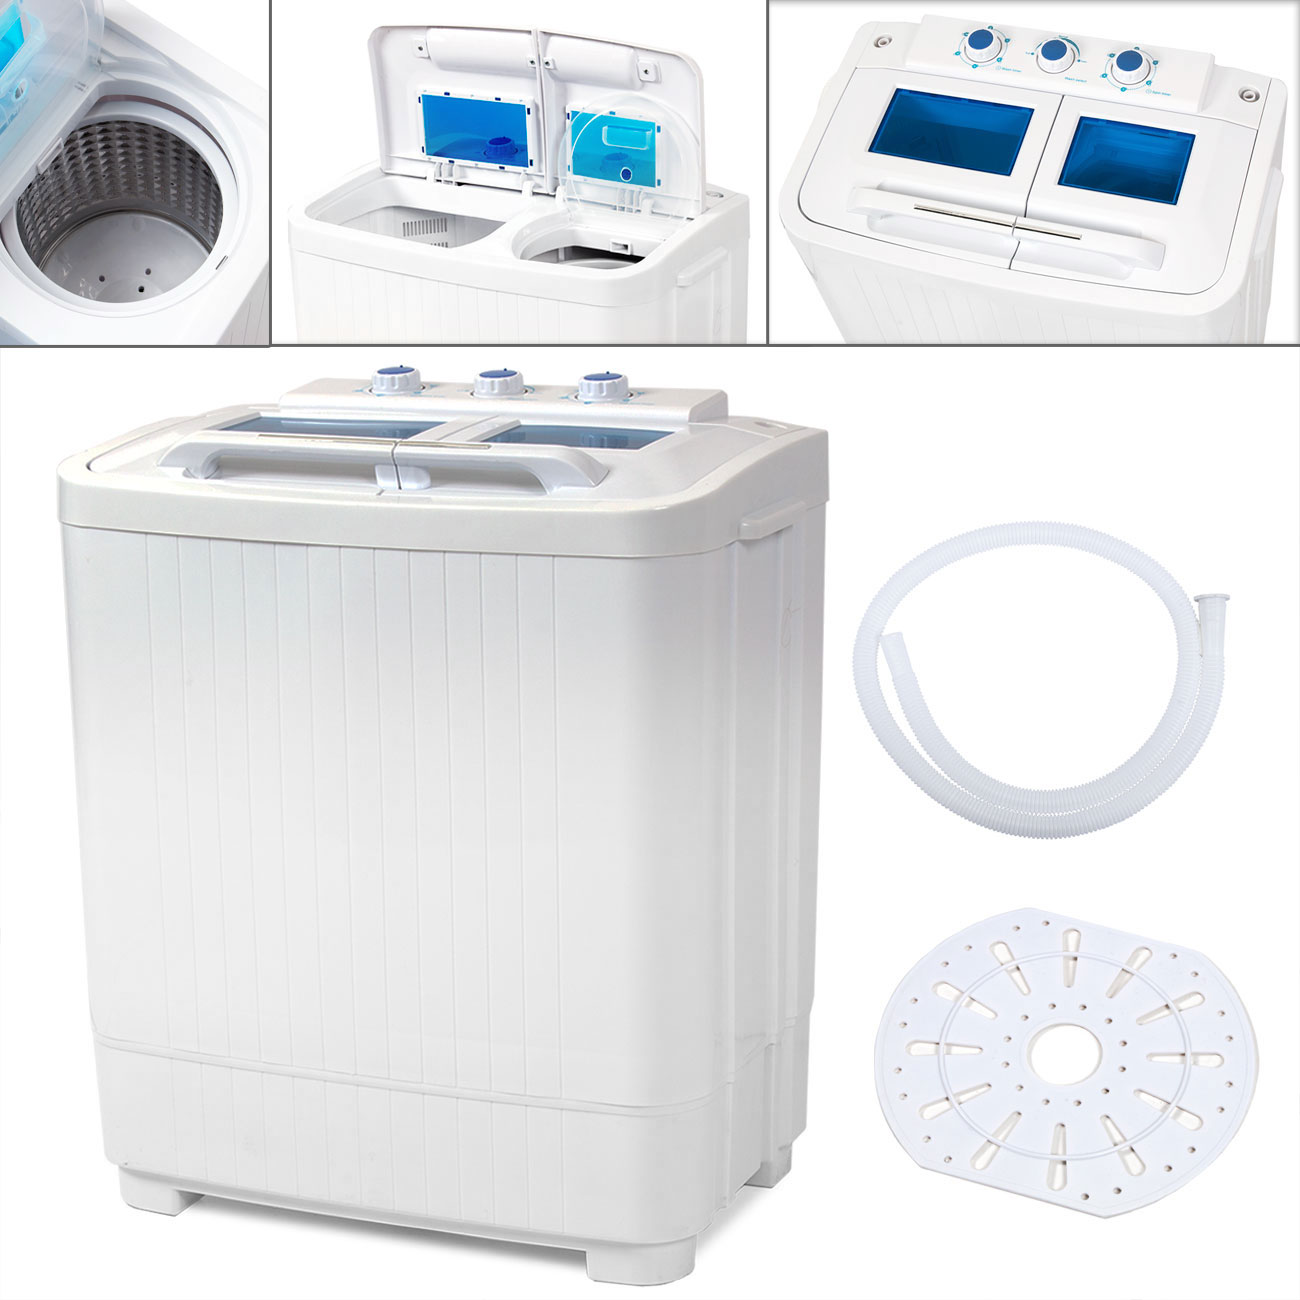 Portable washing machine compact wash spin dry cycle laundry with built in pump ebay - Interesting facts about washing machines ...